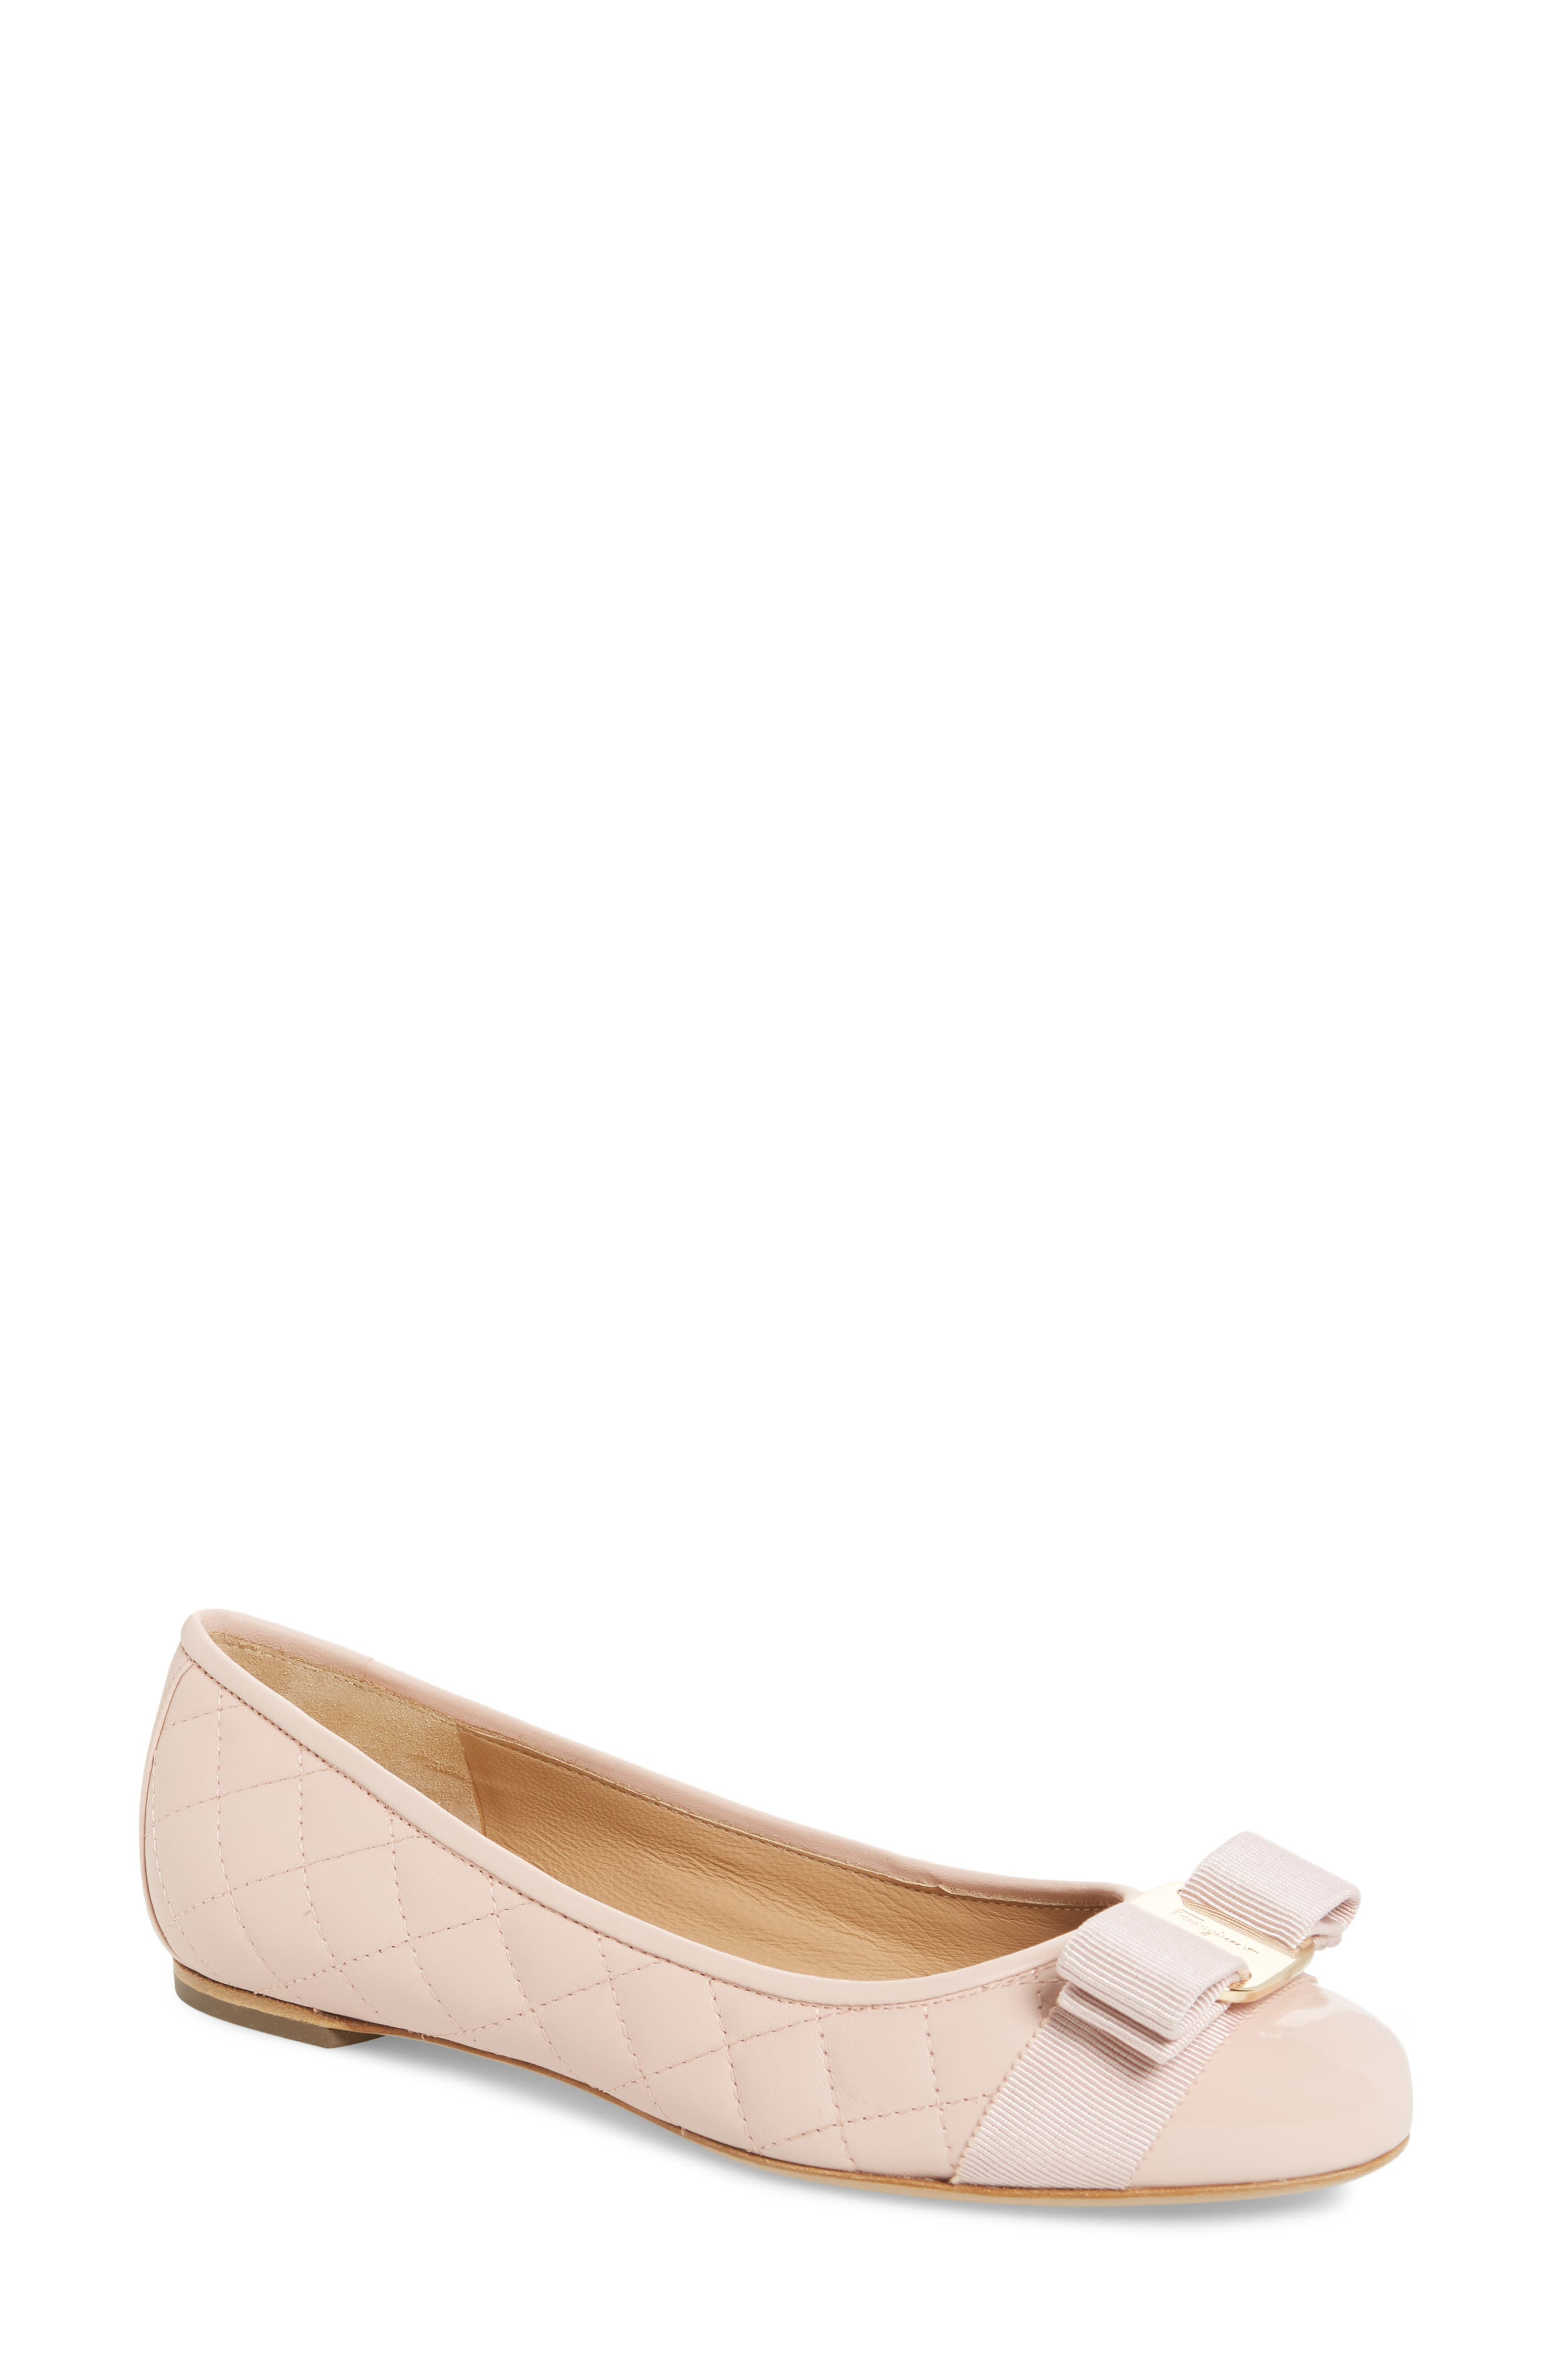 Varina Q Quilted Flat,                         Main,                         color, Bon Bon